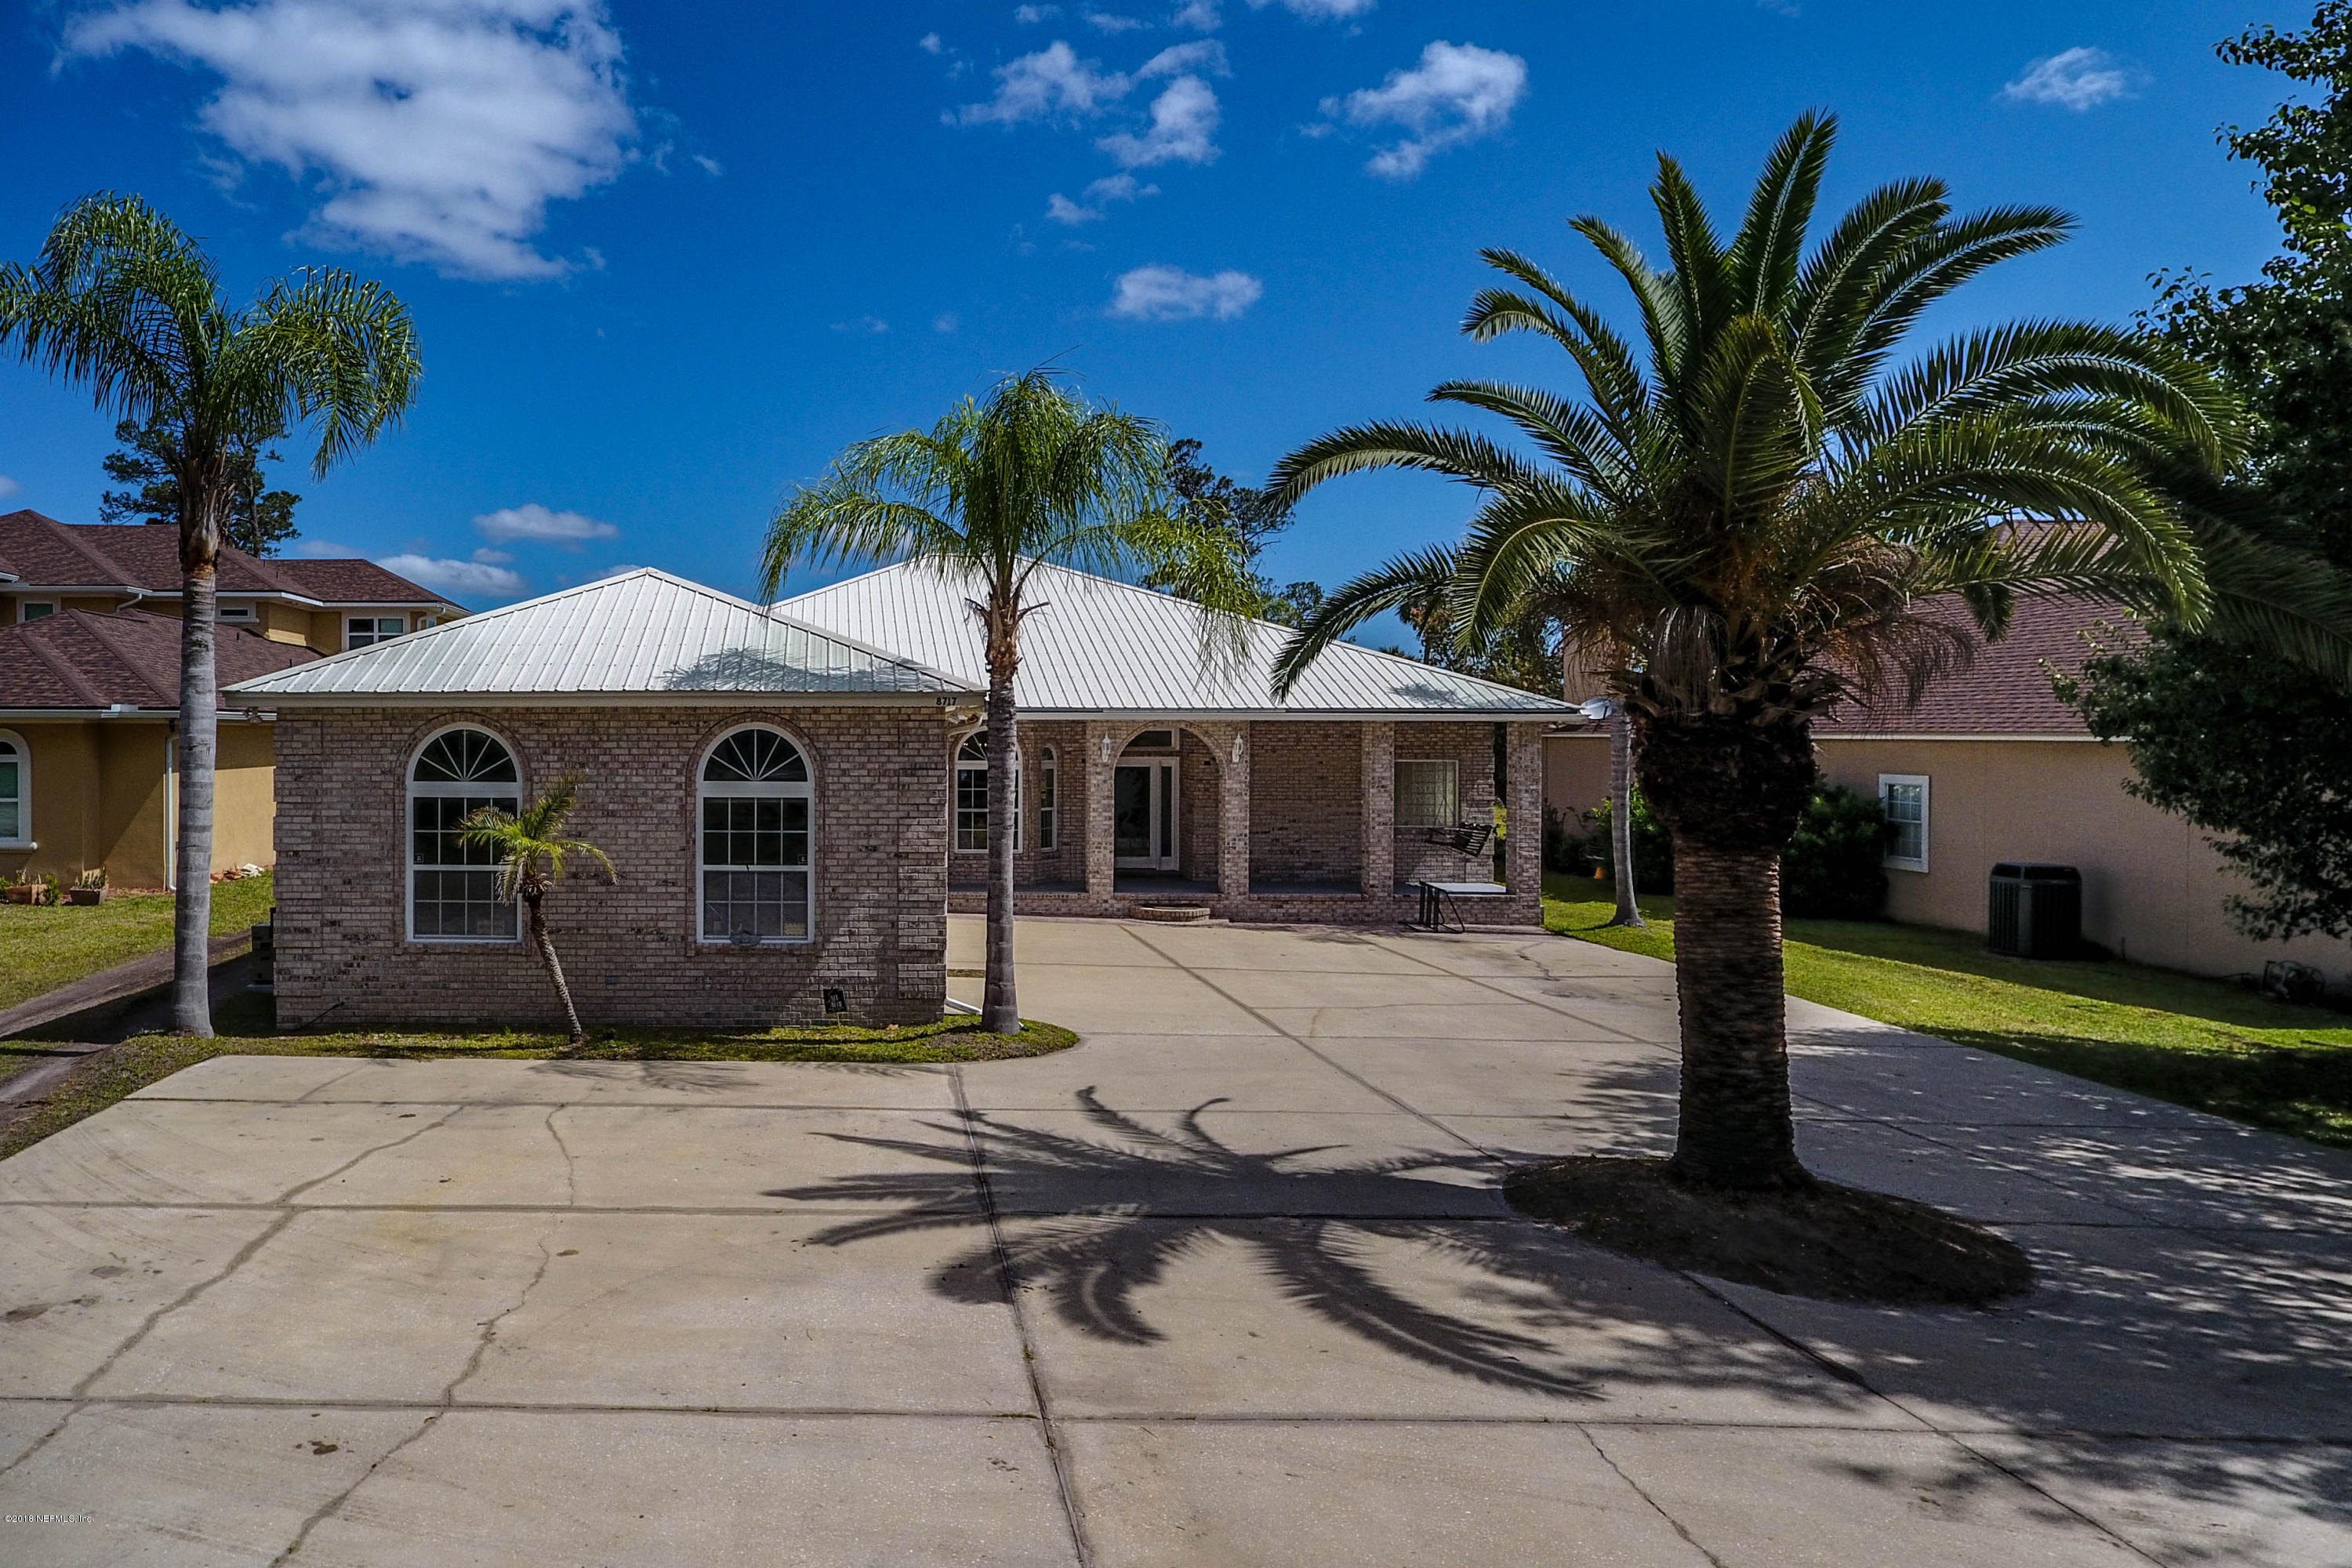 8717 FORT CAROLINE, JACKSONVILLE, FLORIDA 32277, 3 Bedrooms Bedrooms, ,2 BathroomsBathrooms,Residential - single family,For sale,FORT CAROLINE,948815